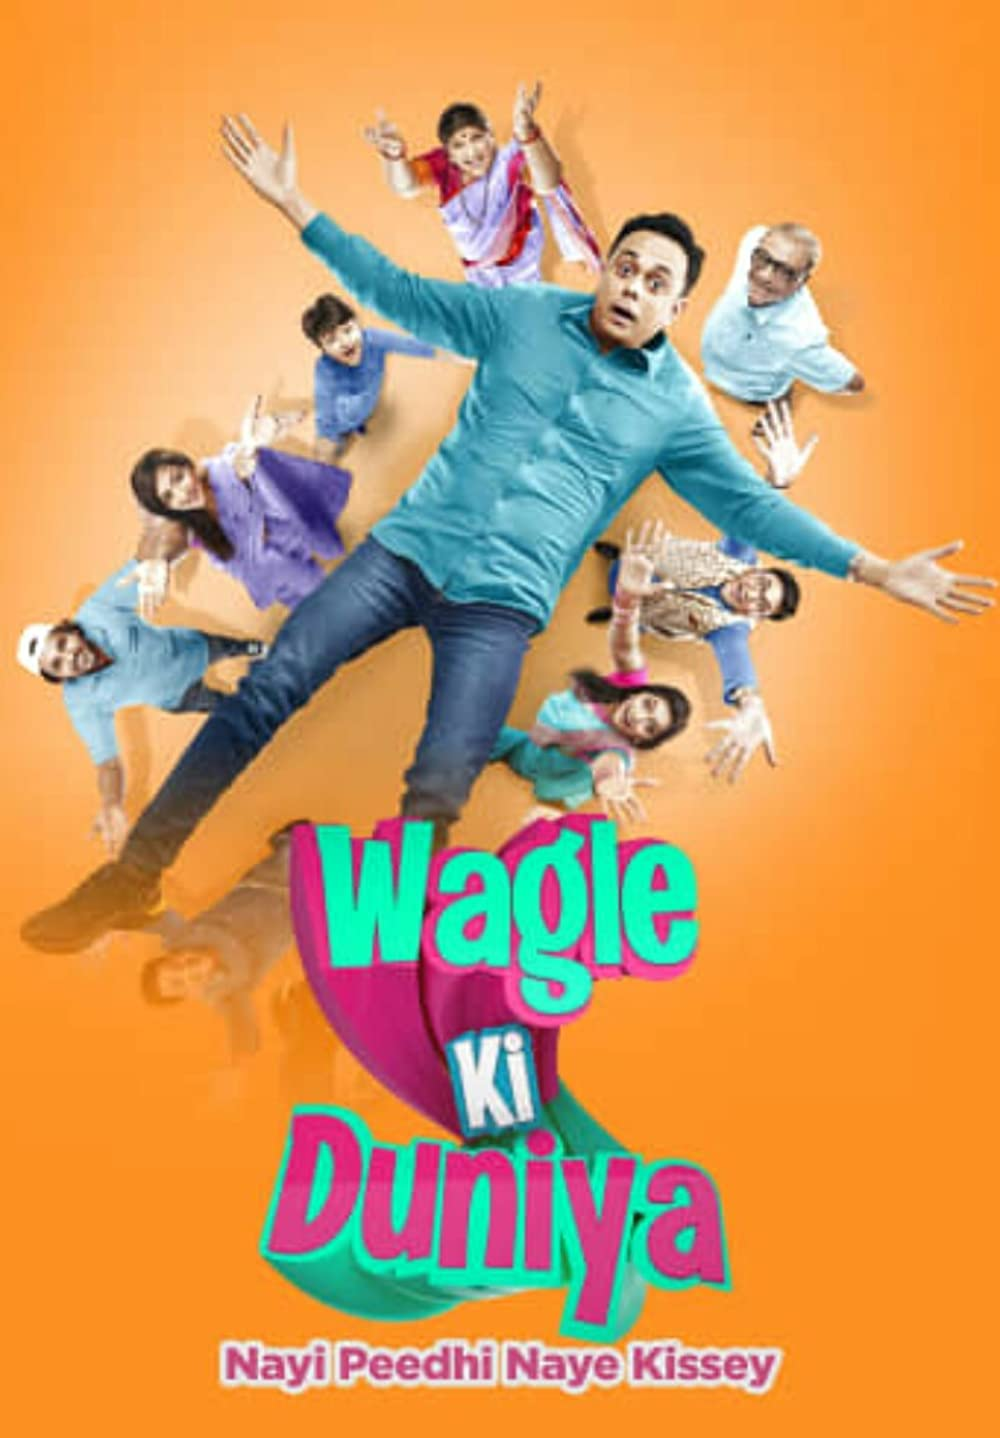 Wagle Ki Duniya 2021 S01 Hindi Complete Sonyliv Original Web Series 720p HDRip 1.8GB x264 AAC